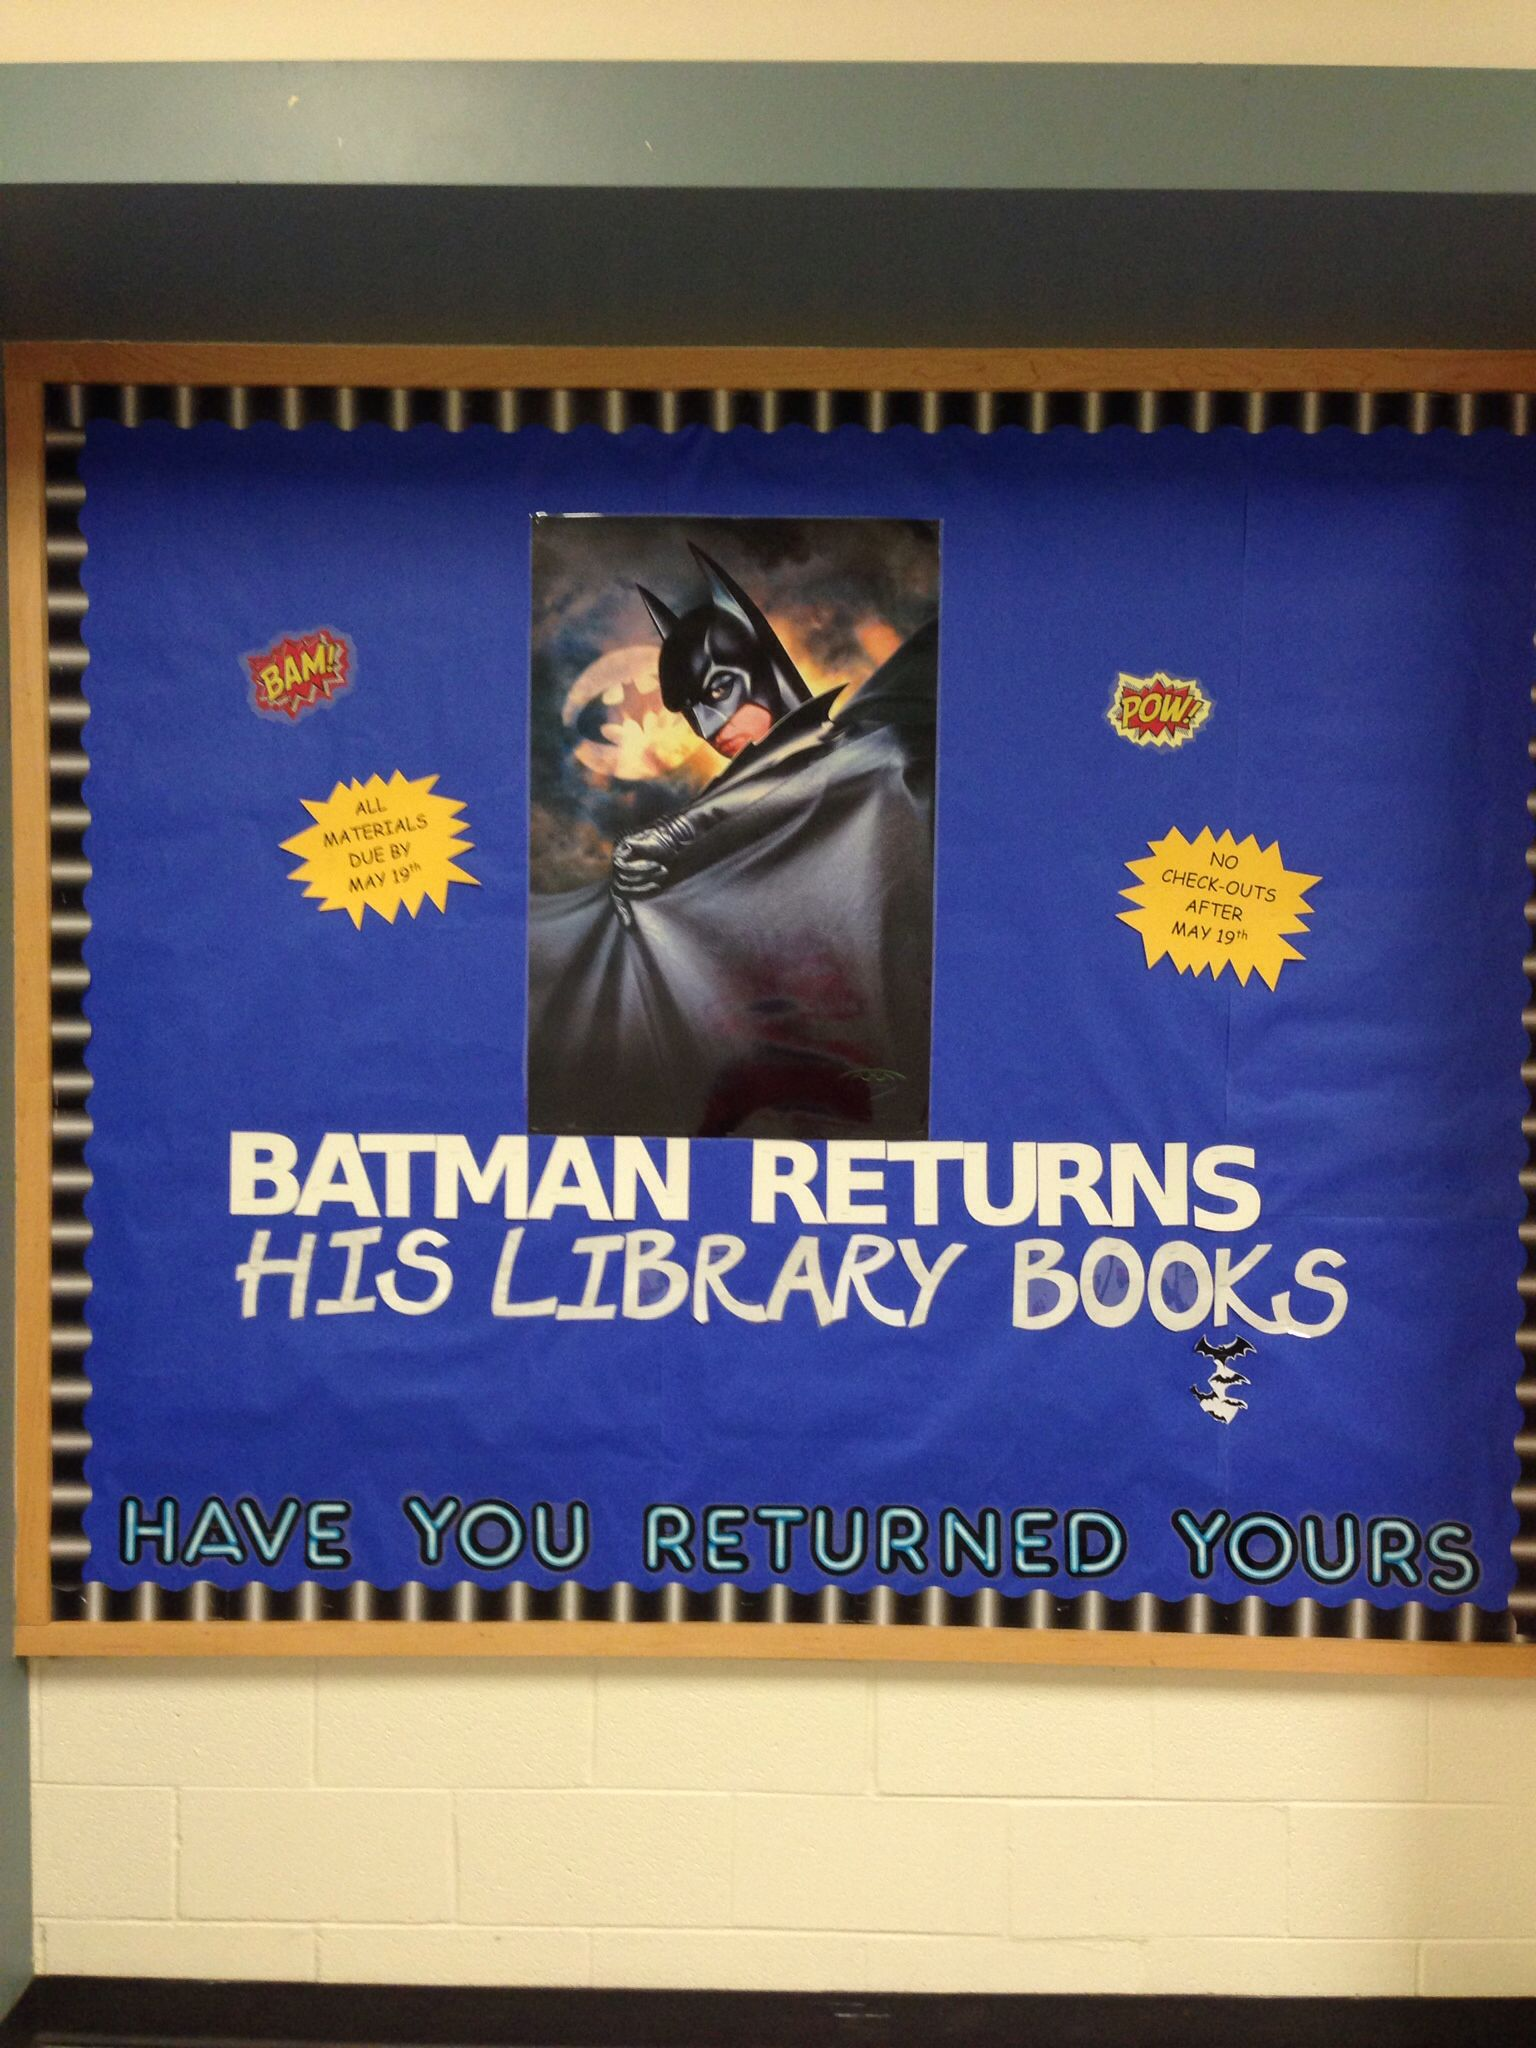 Batman Returns His Library Books Getting Ready For End Of School Year